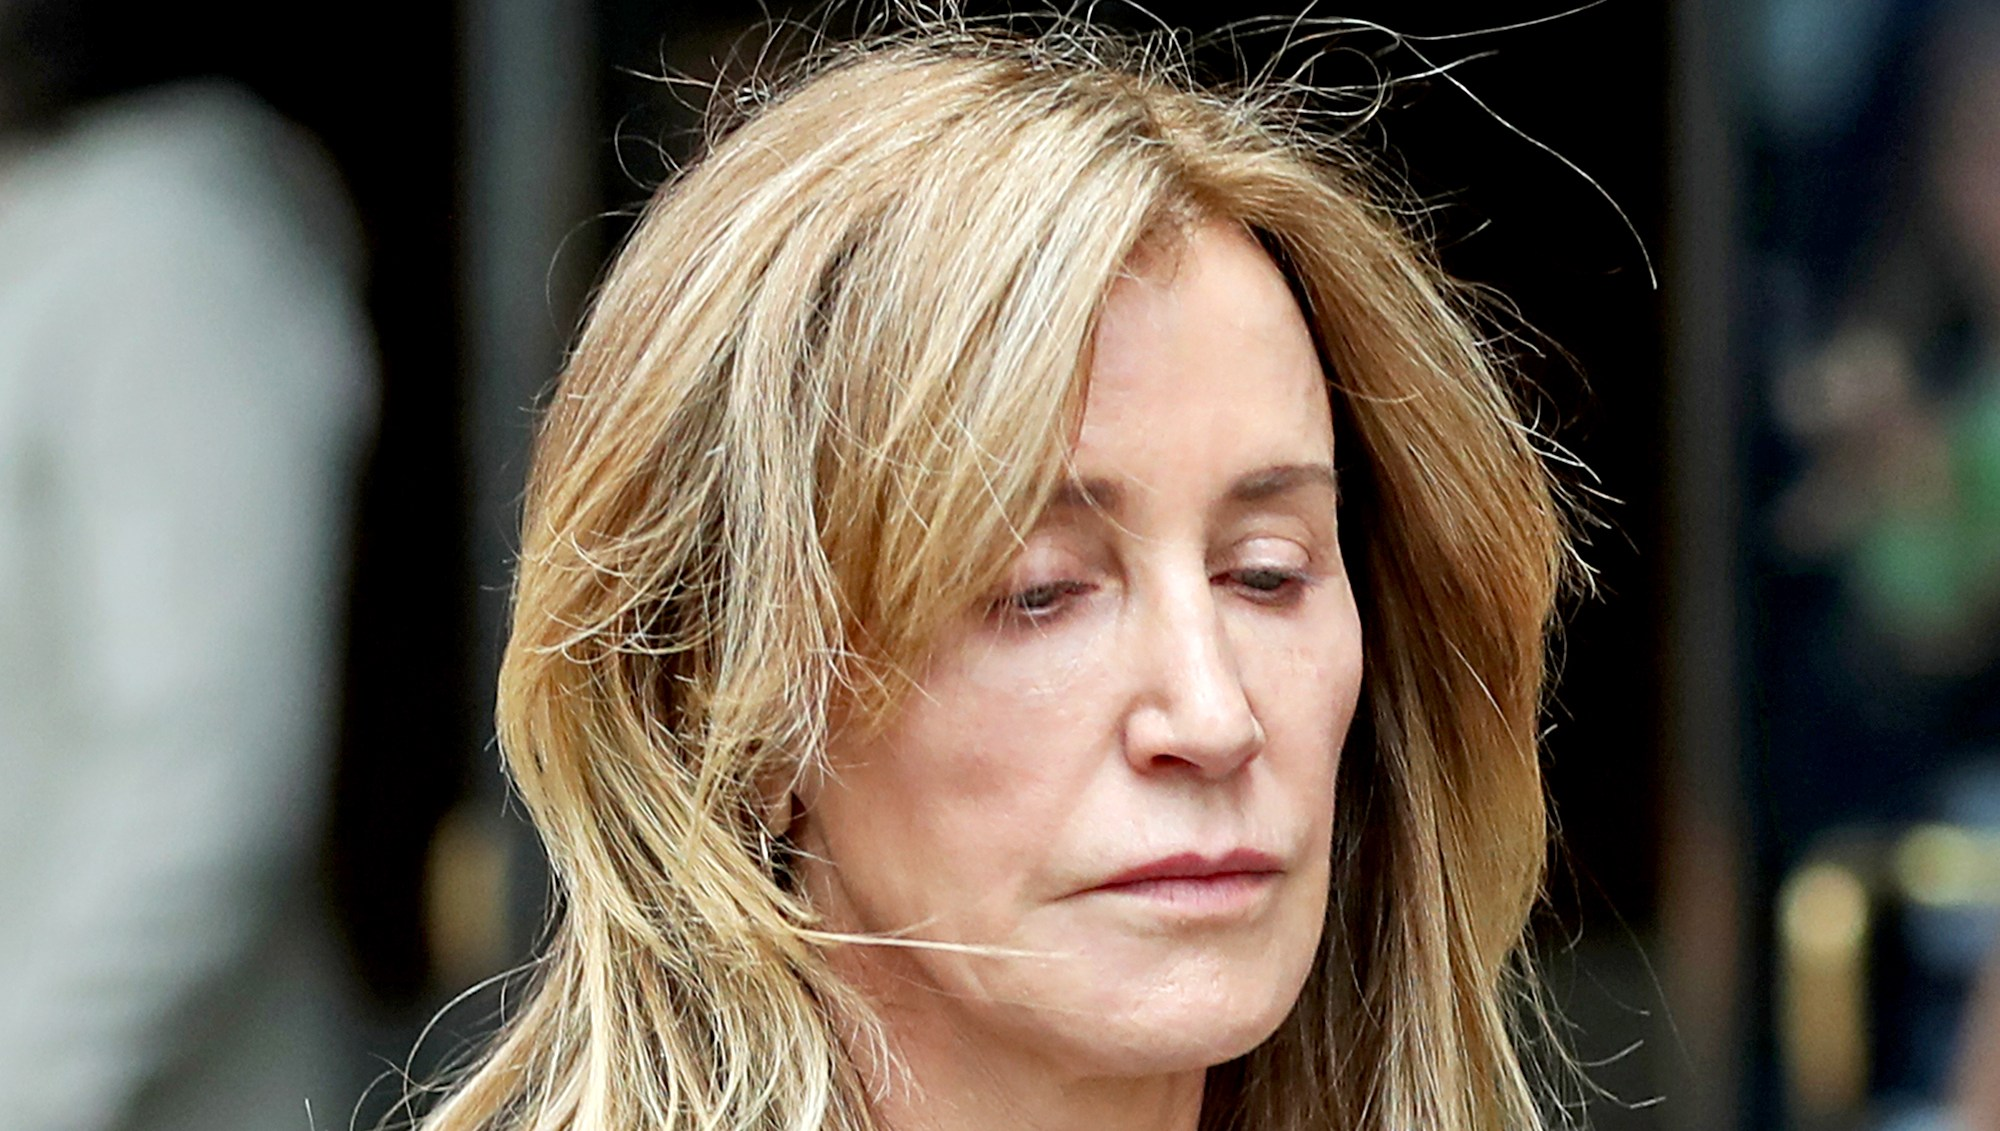 Felicity-Huffman-cried-Pleading-Guilty-to-Fraud